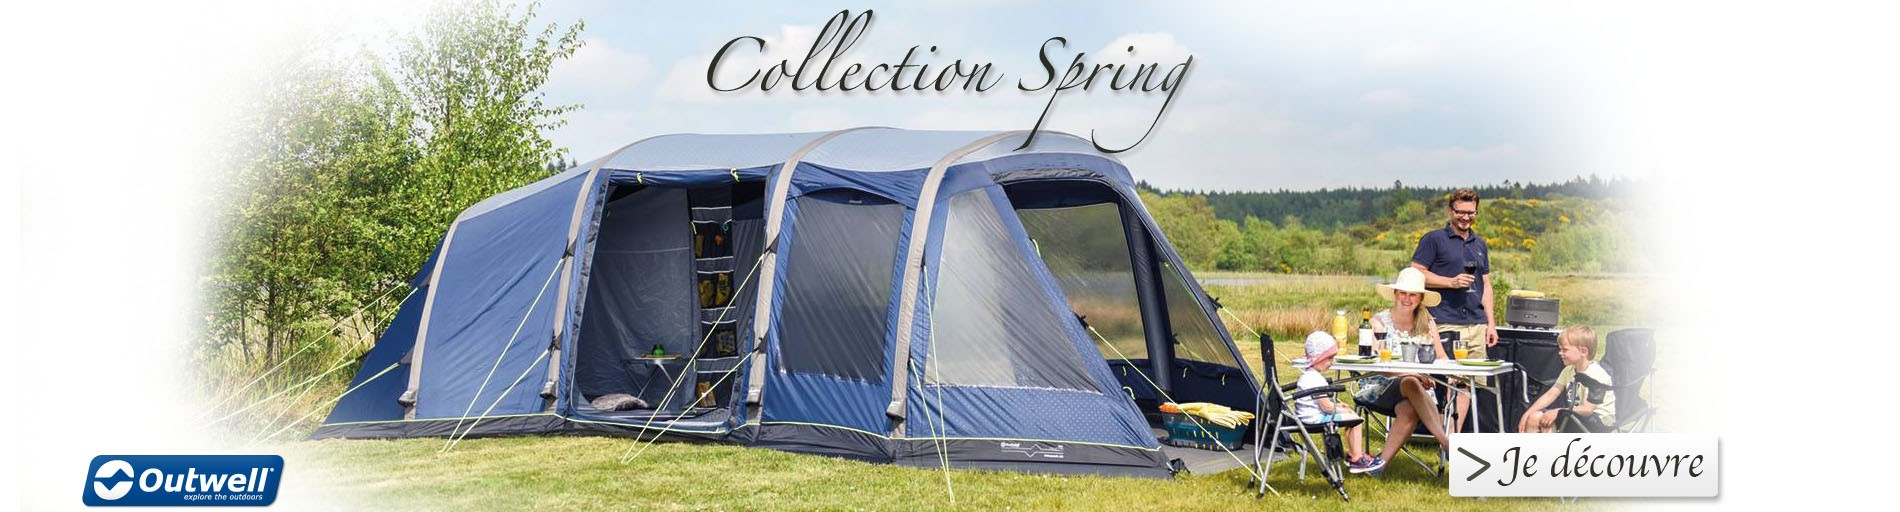 Collection Spring Outwell